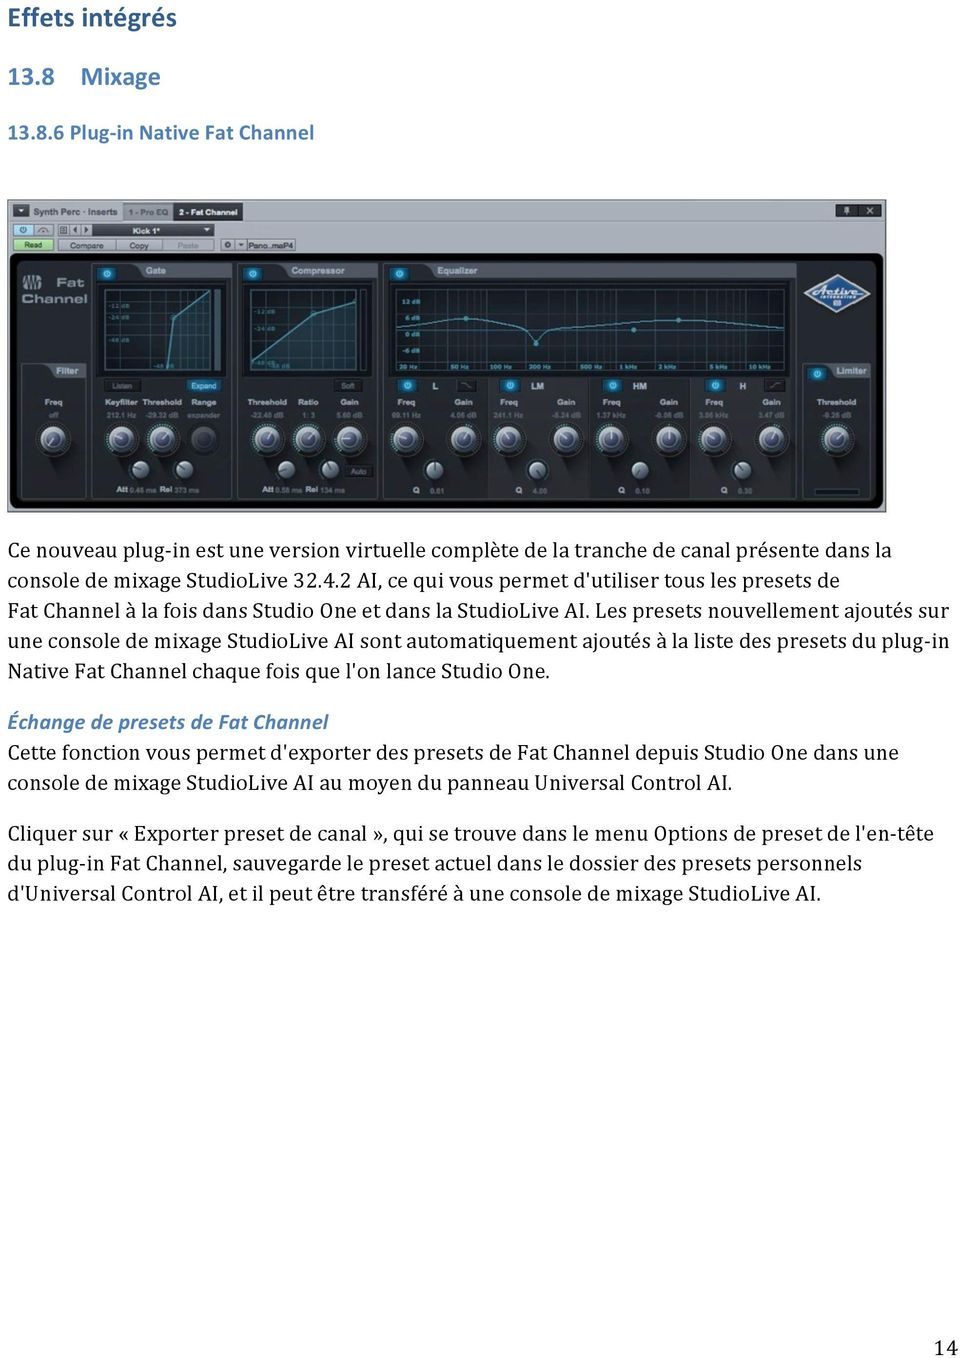 Les presets nouvellement ajoutés sur une console de mixage StudioLive AI sont automatiquement ajoutés à la liste des presets du plug- in Native Fat Channel chaque fois que l'on lance Studio One.